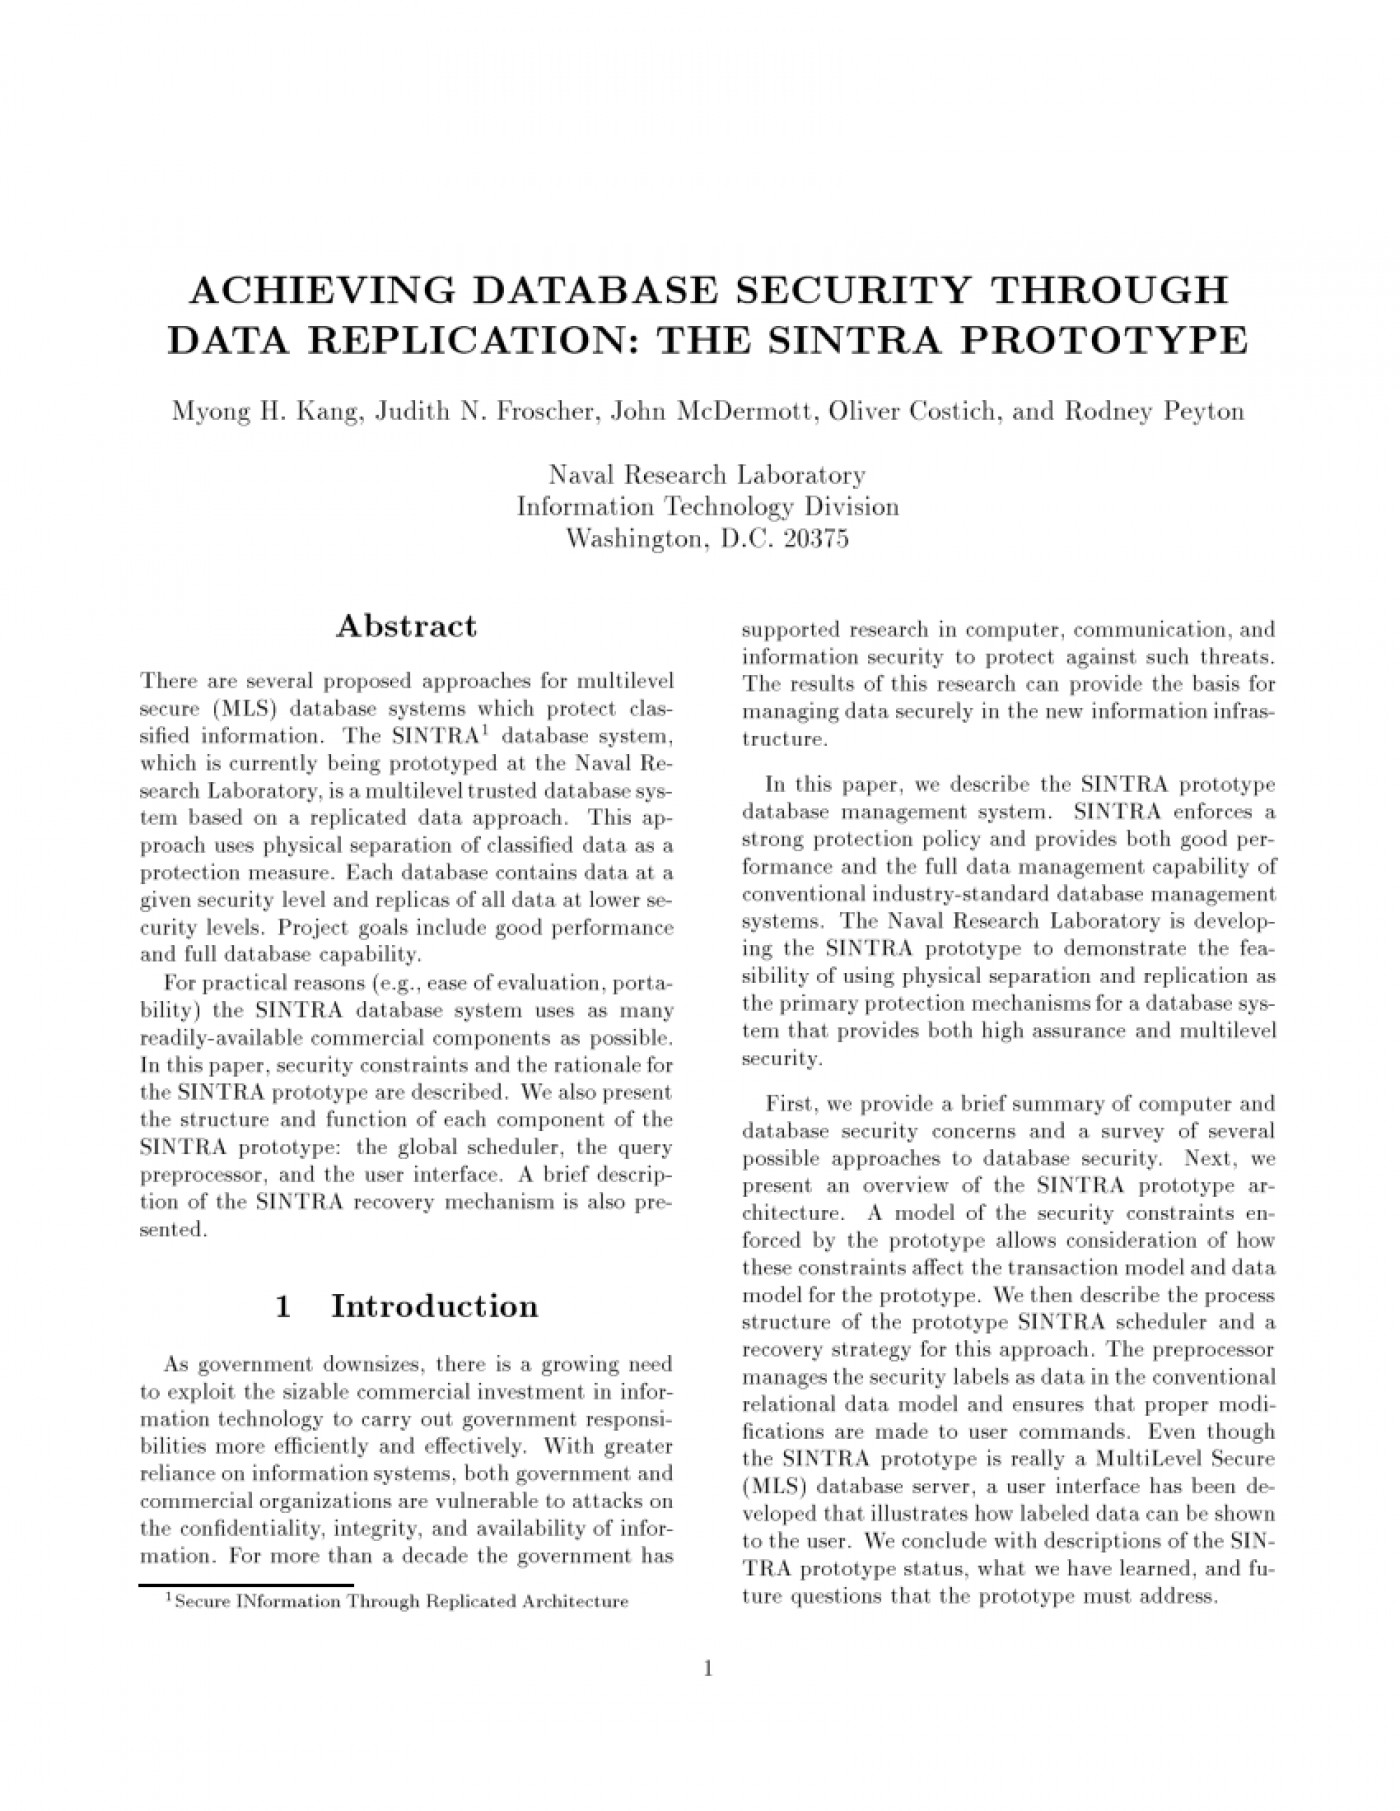 003 Database Security Research Paper Abstract Fascinating 1400